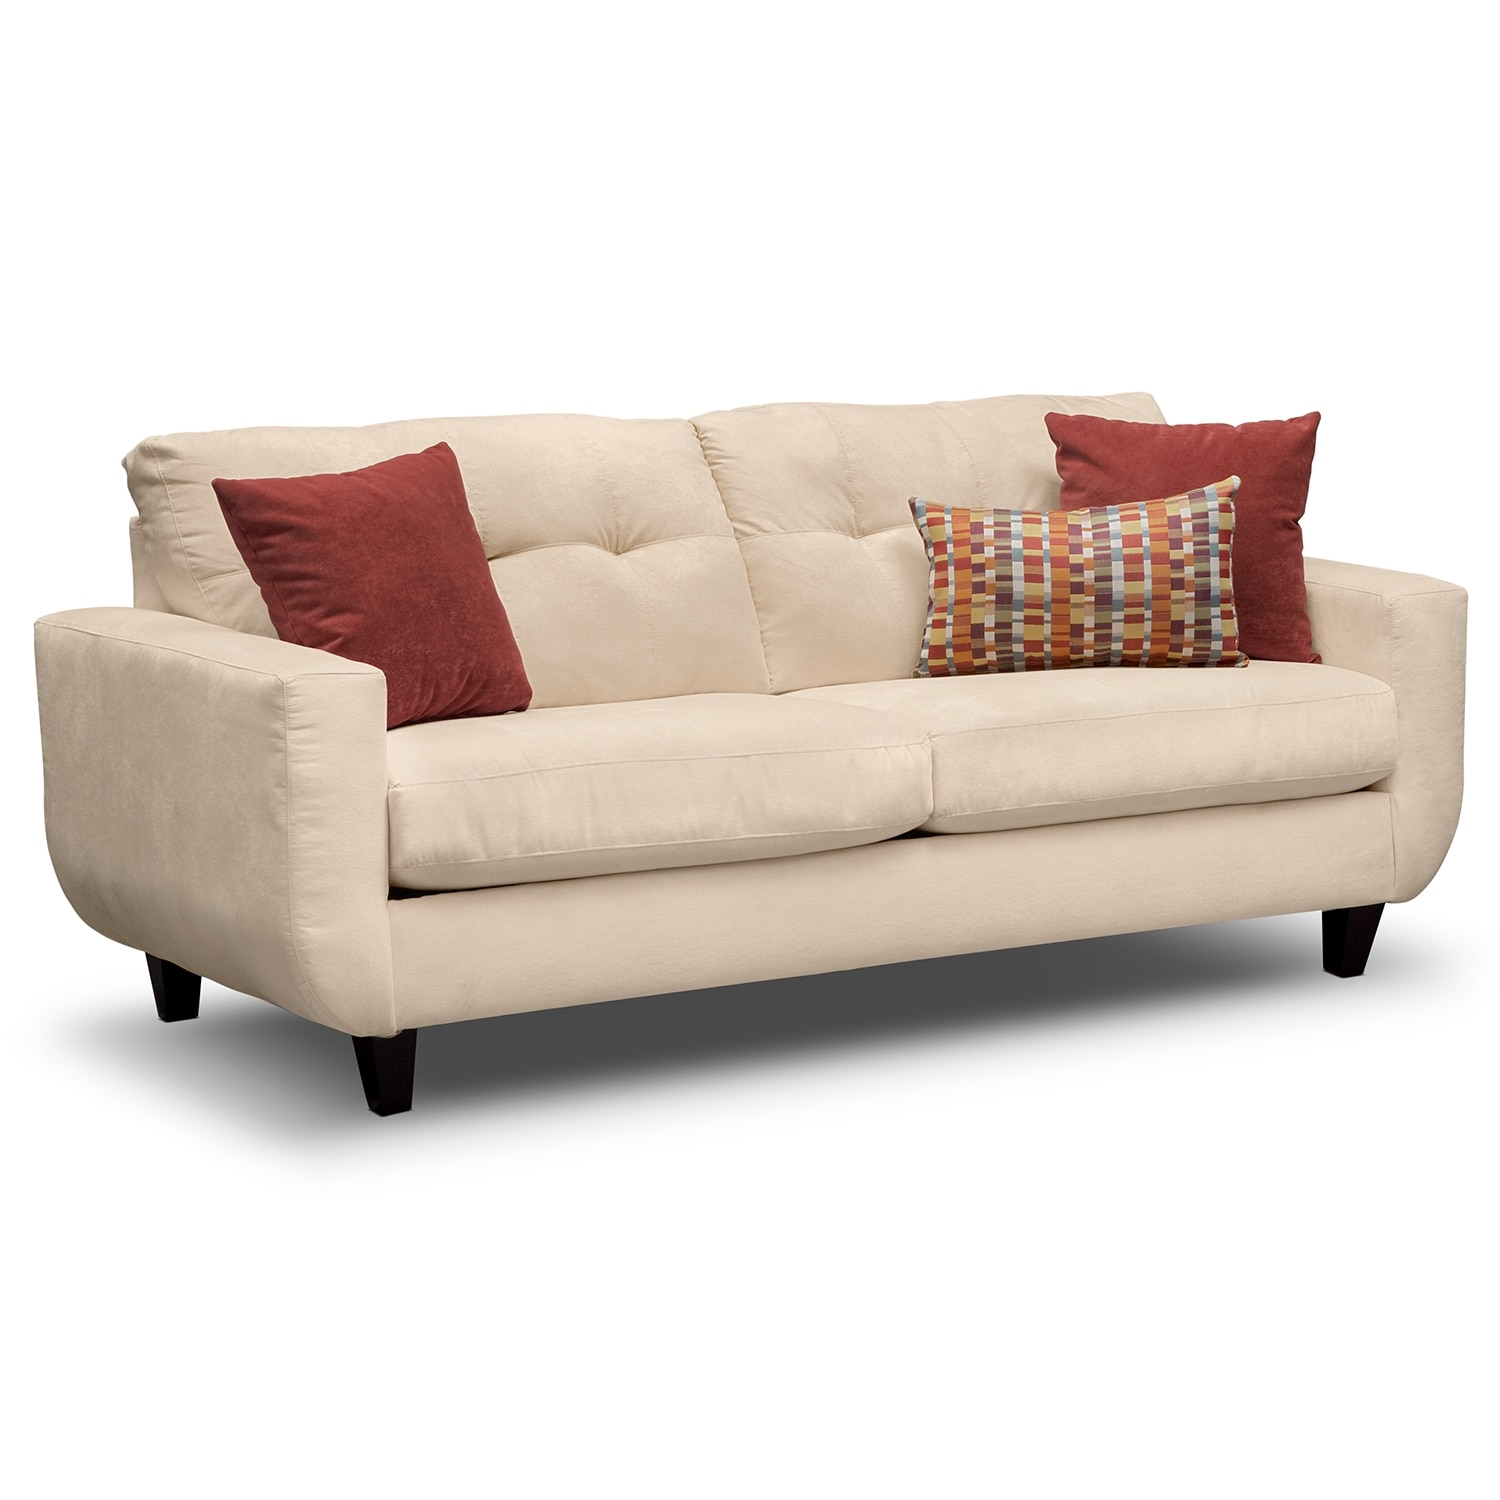 Living Room Furniture - West Village Cream Sofa